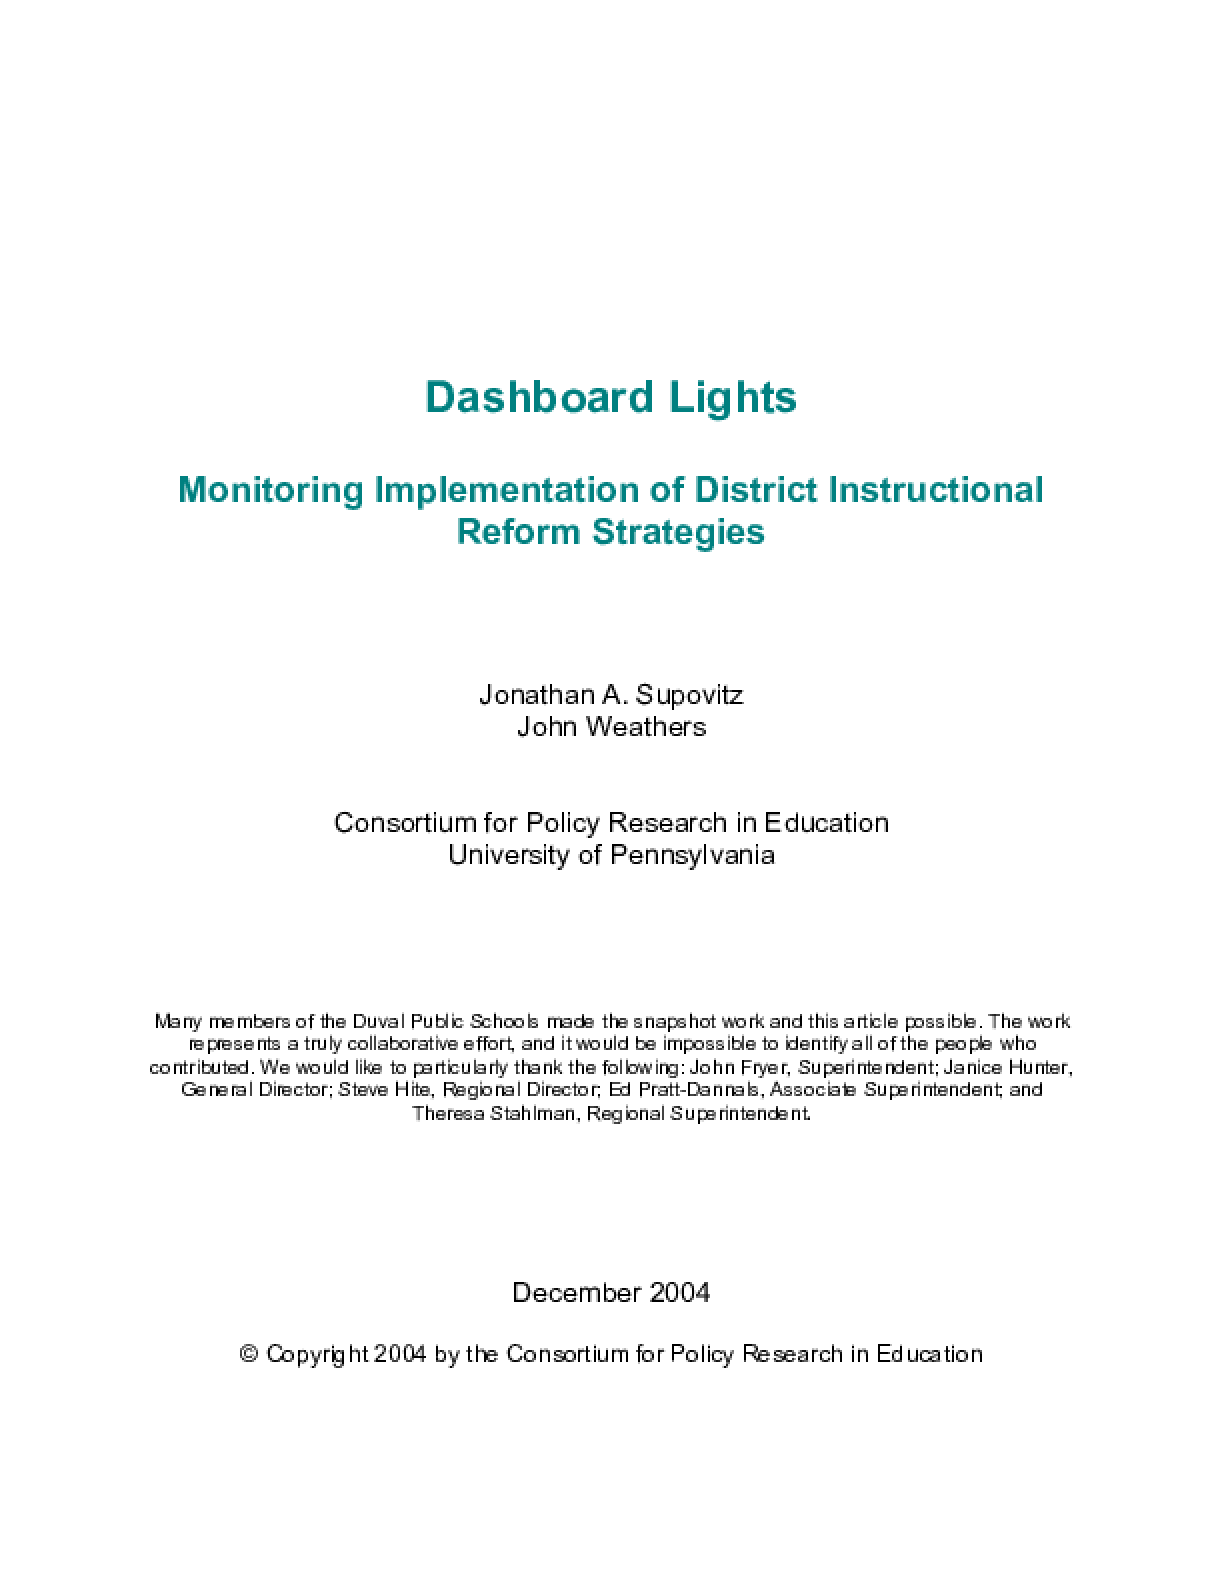 Dashboard Lights: Monitoring Implementation of District Instructional Reform Strategies